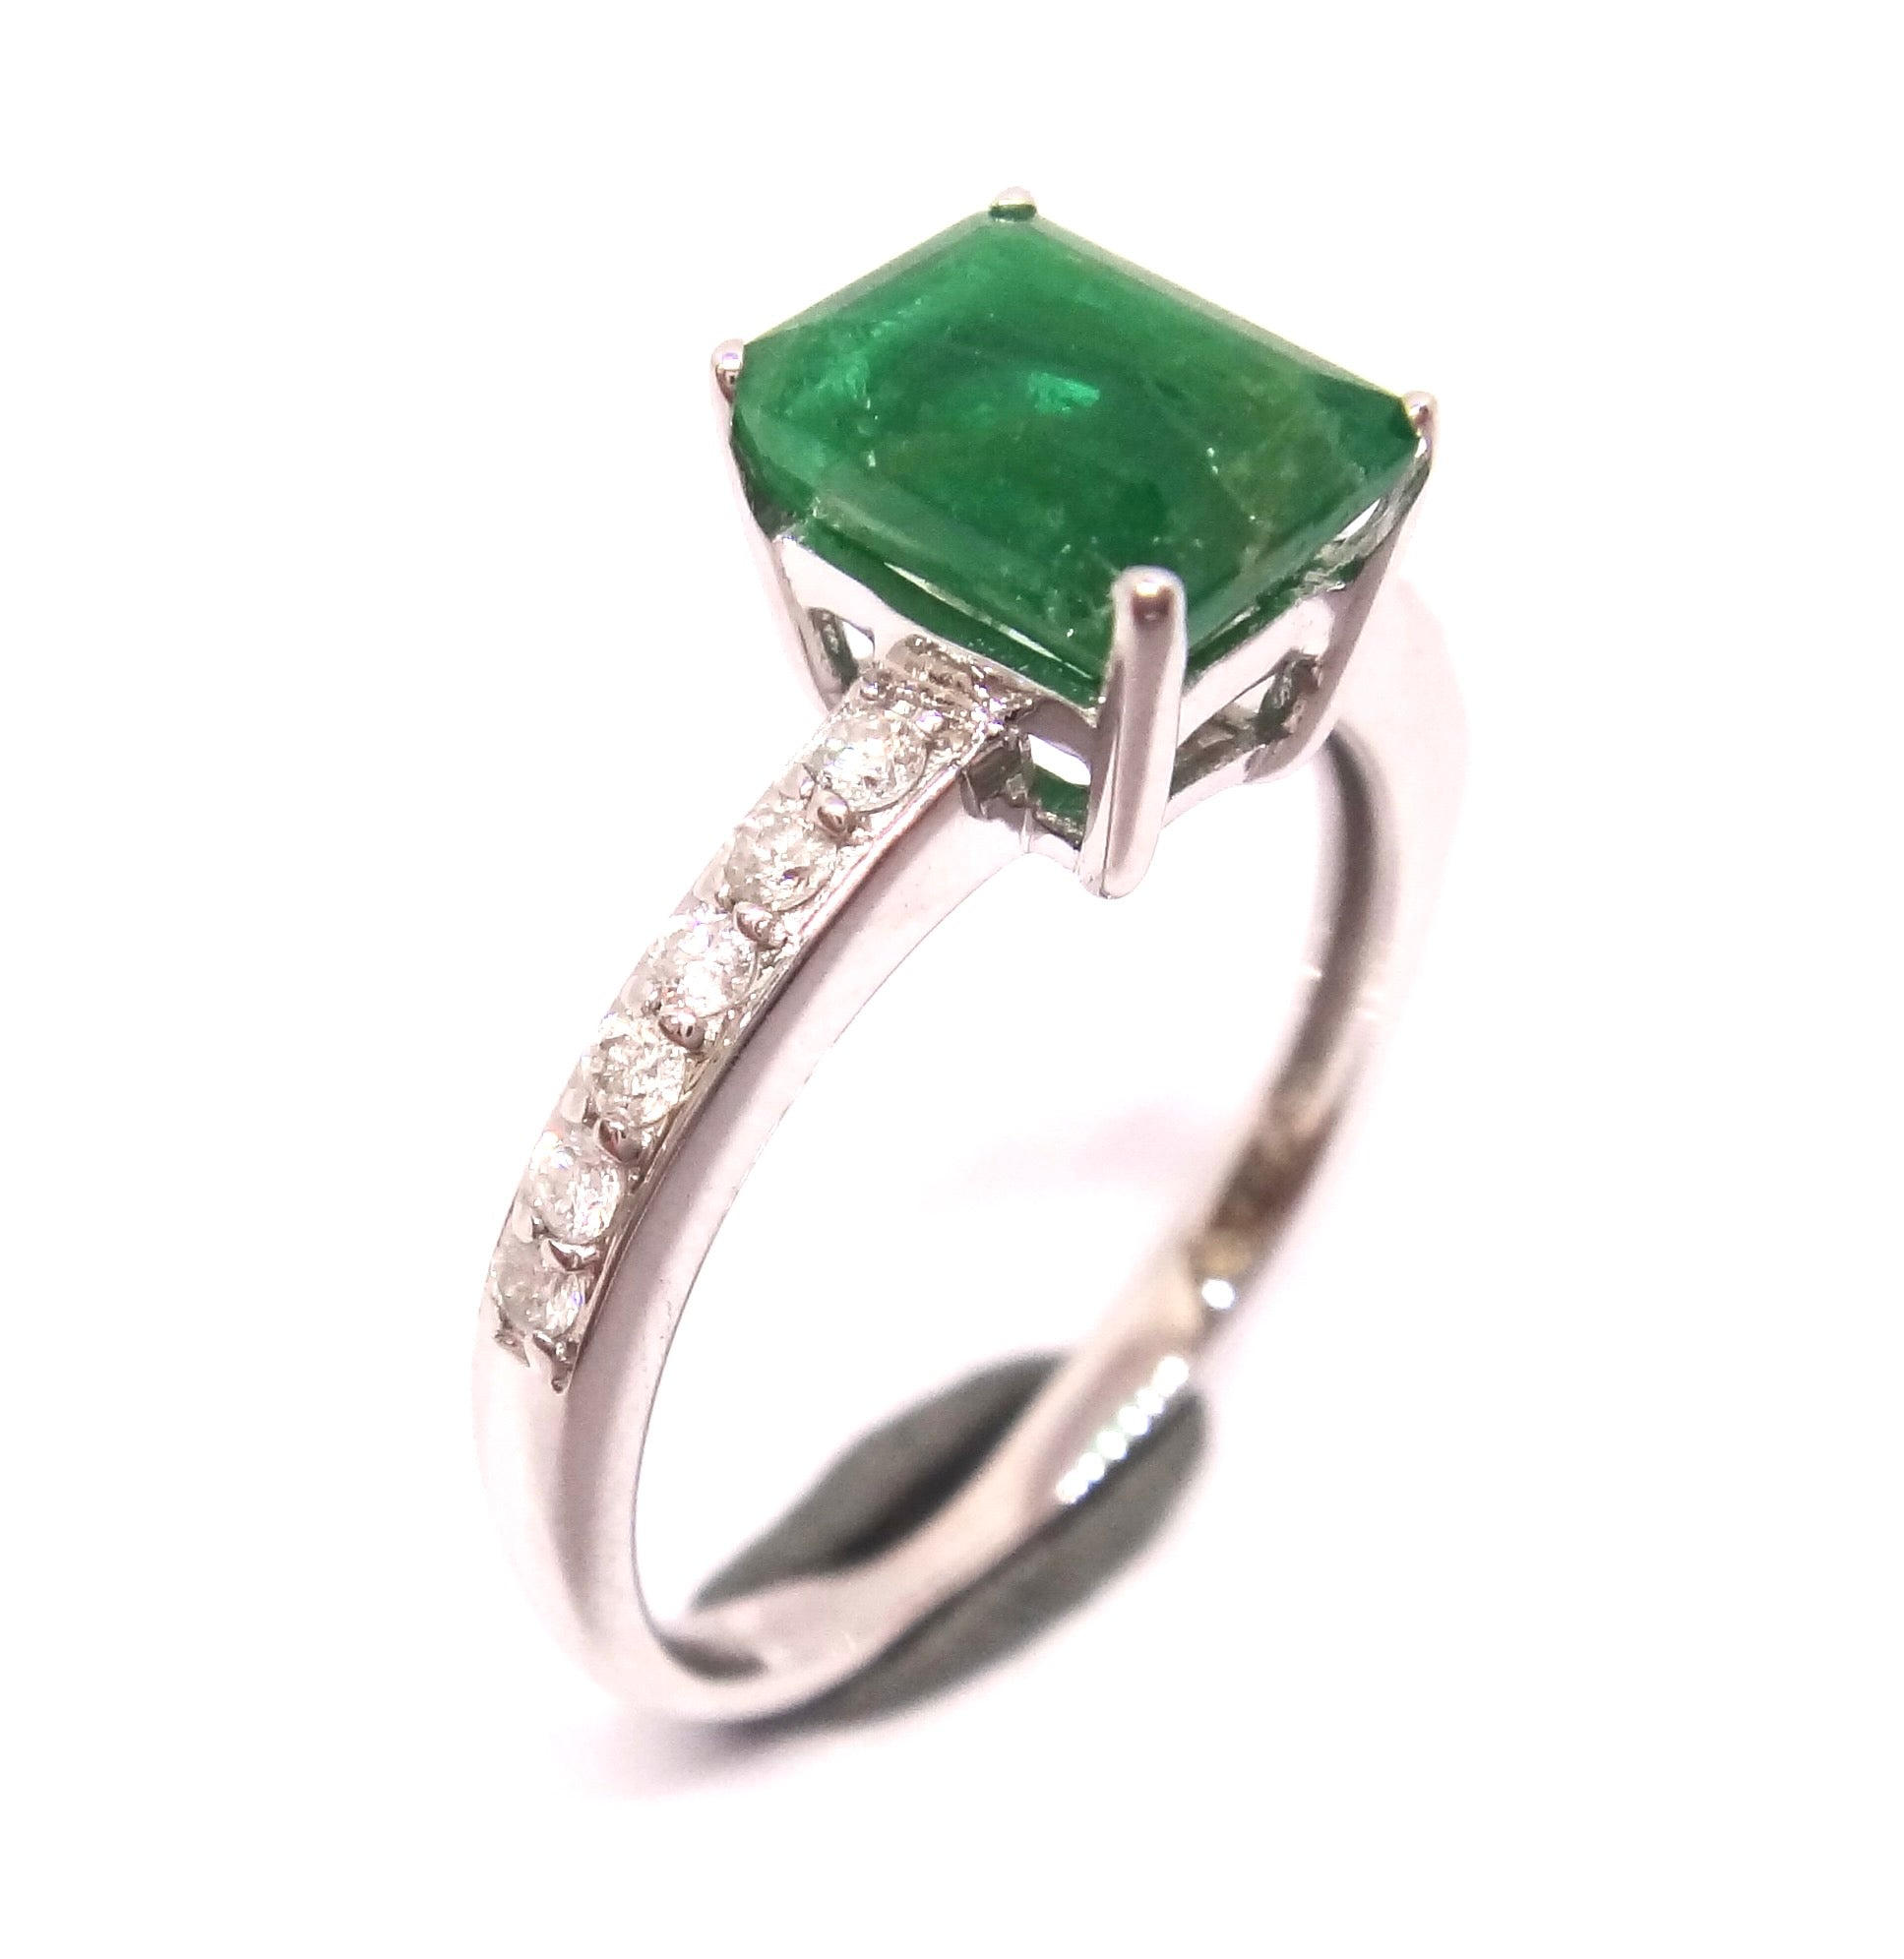 10CT White GOLD, Emerald & Diamond Ring VAL $4,910